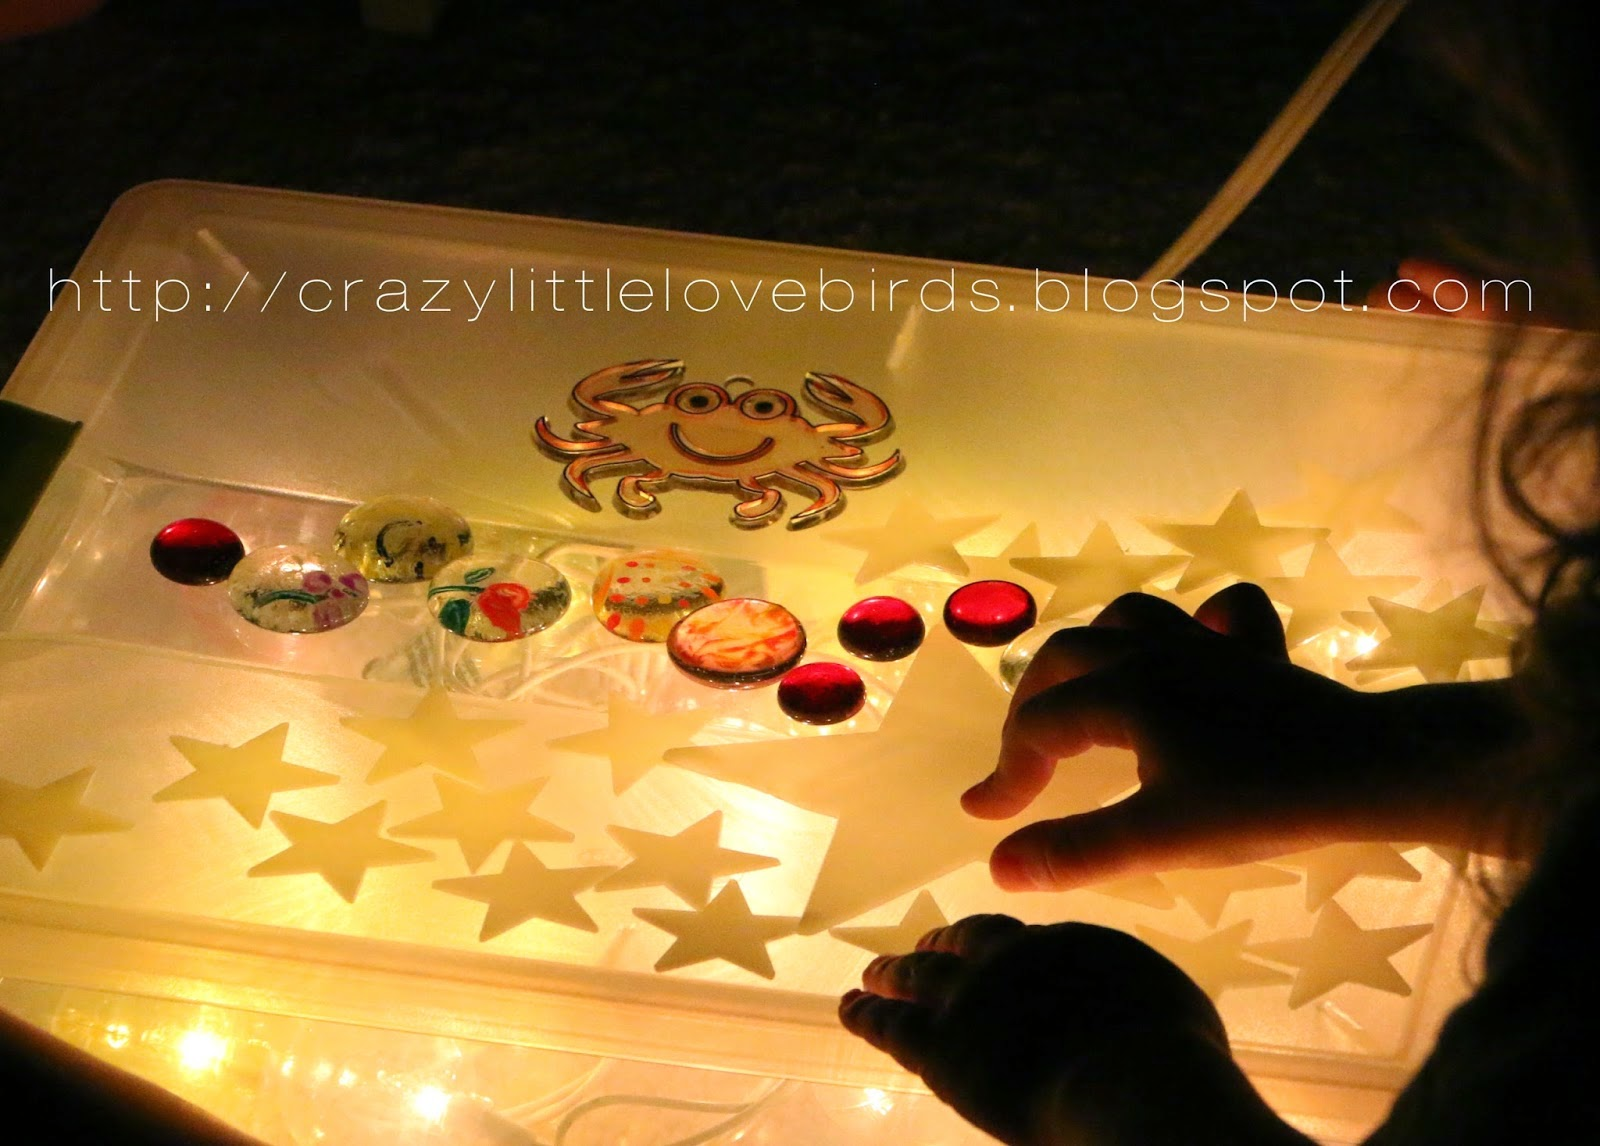 http://crazylittlelovebirds.blogspot.com/2014/06/light-up-room.html